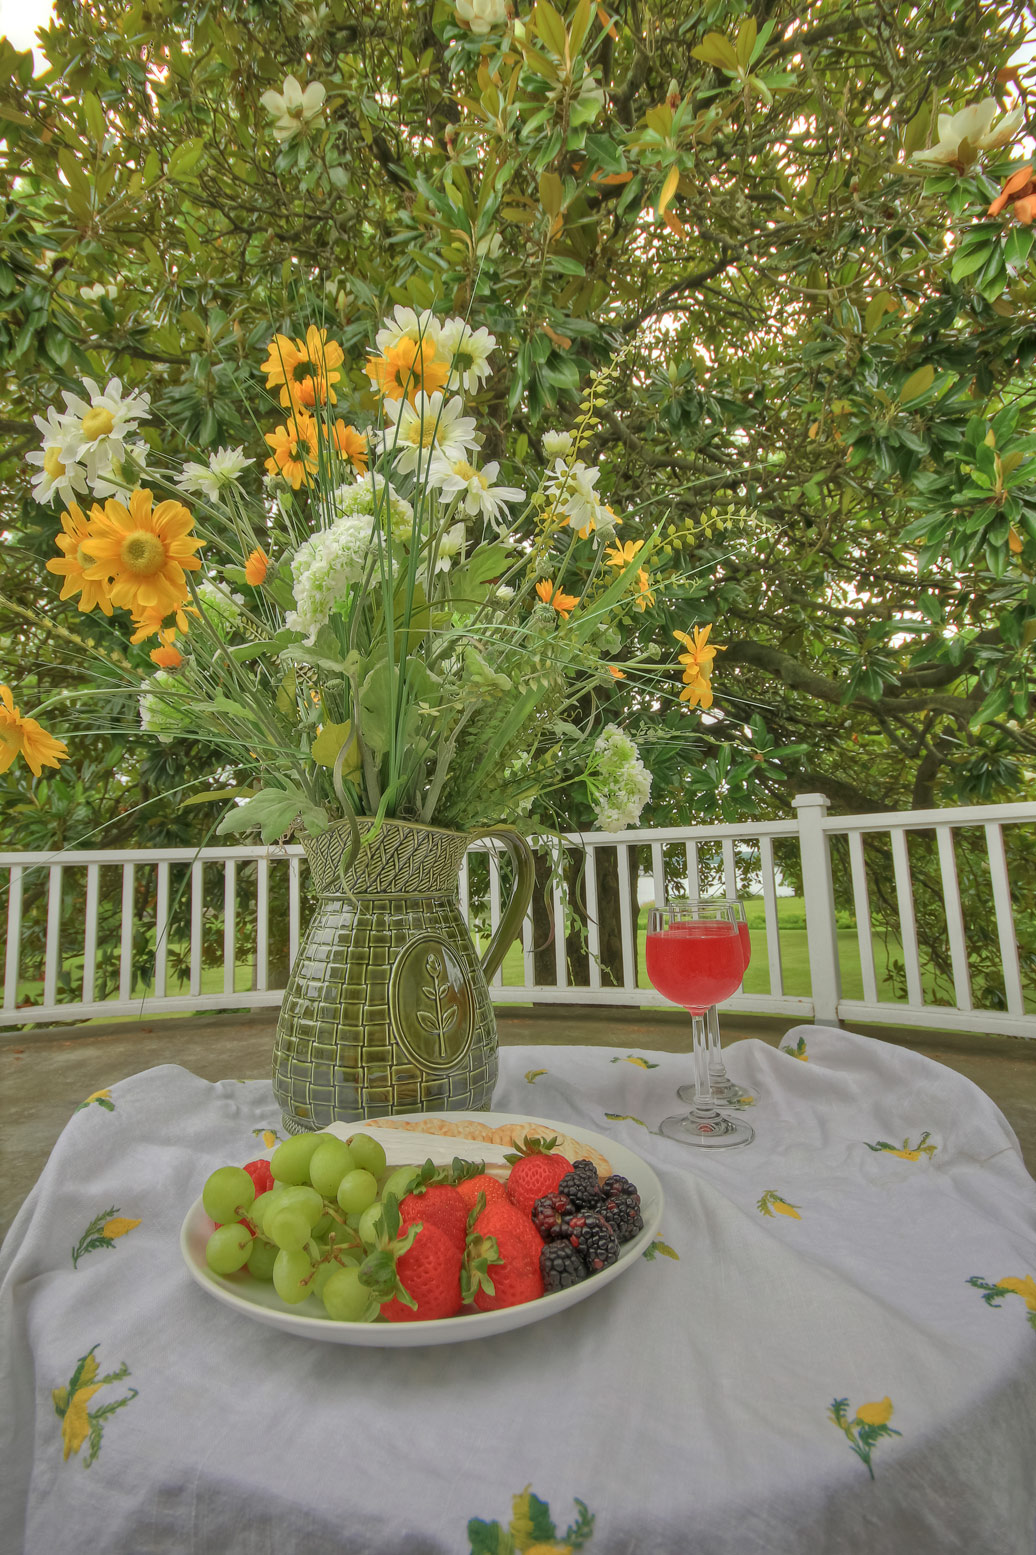 cheese plate with fruit wine glasses and flower arrangement on outside table on patio